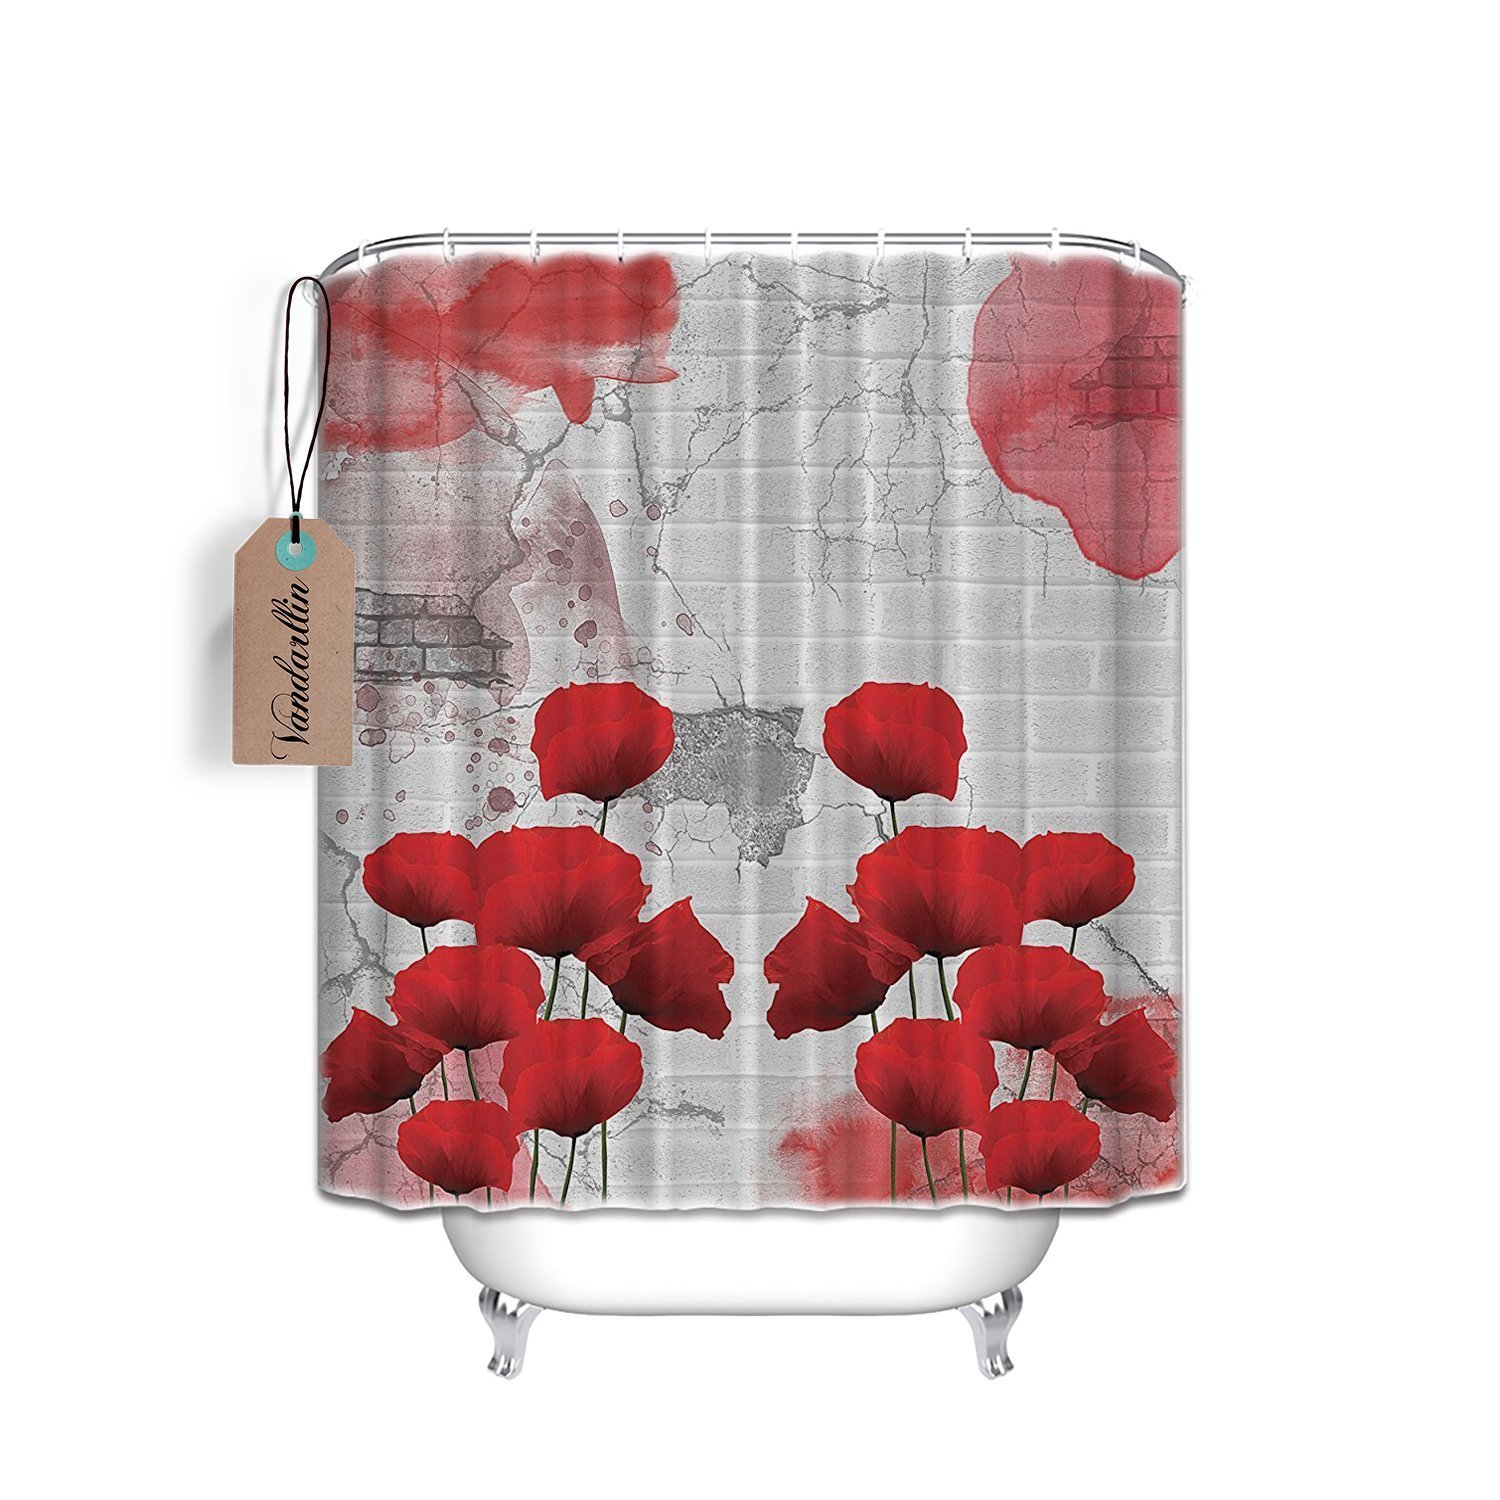 Red Poppy Flower and Bricks Abstract Art Polyester Fabric Shower